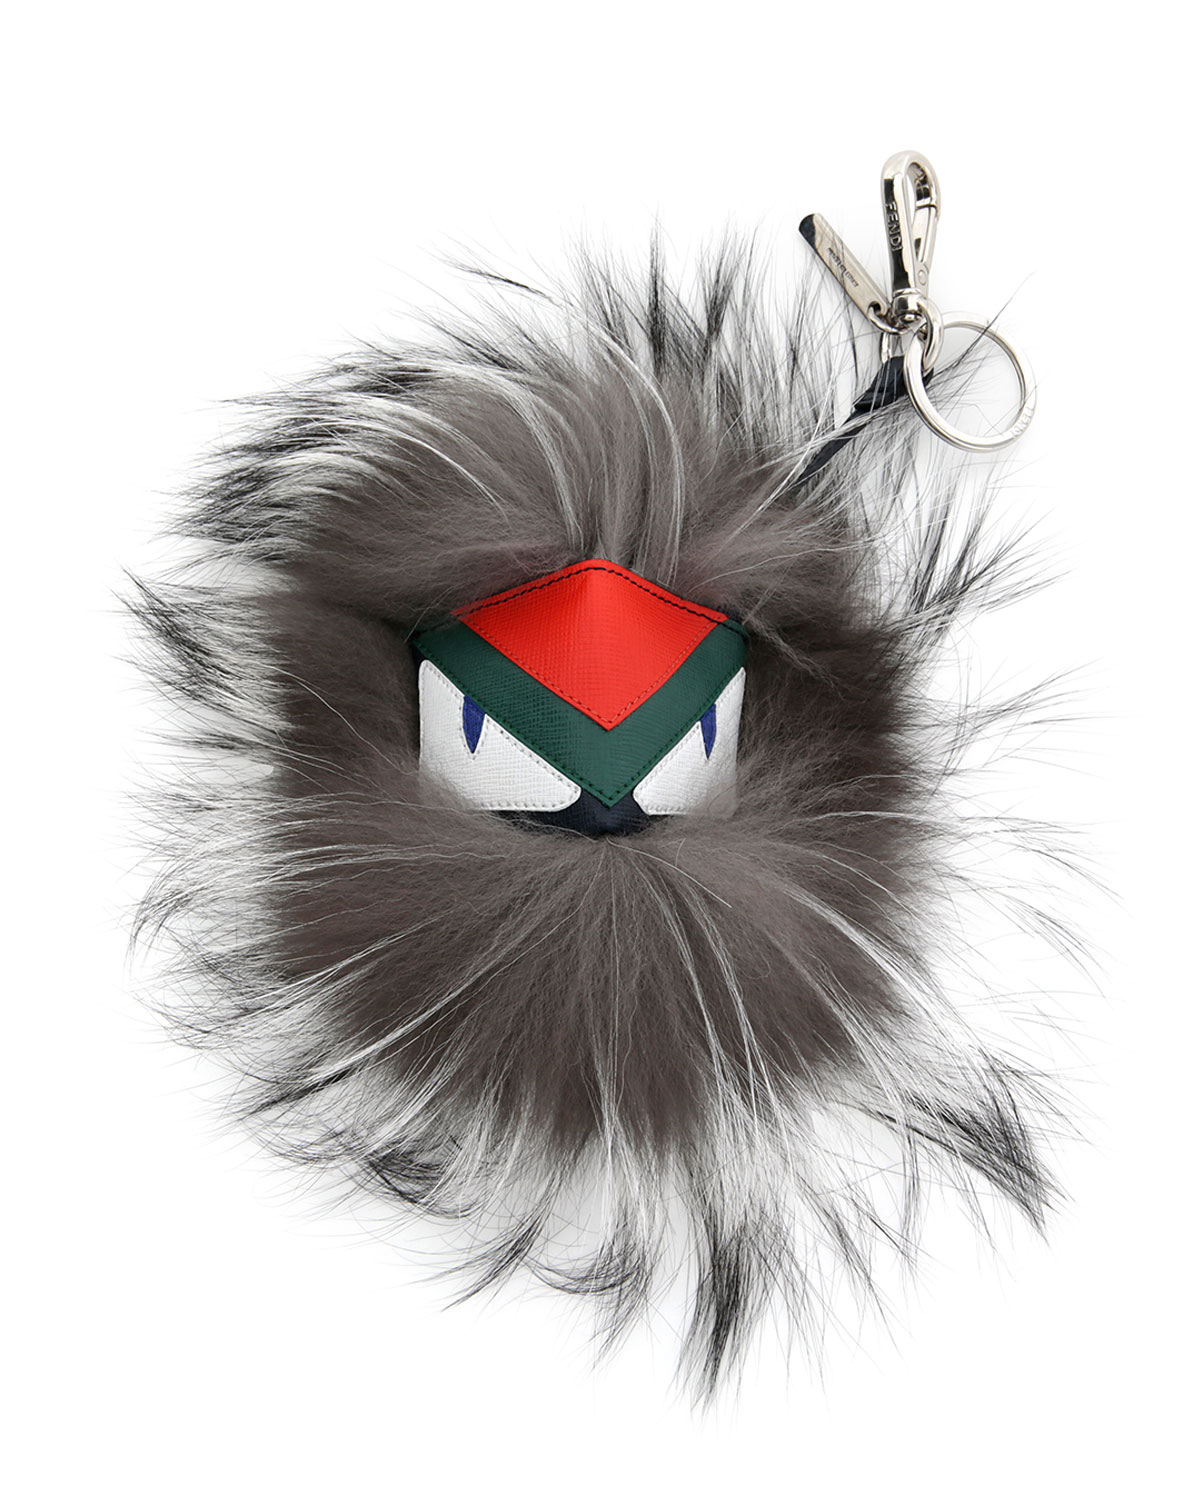 Fendi Charm Bracelet | Fendi Fur Monster | Fendi Bag Bug